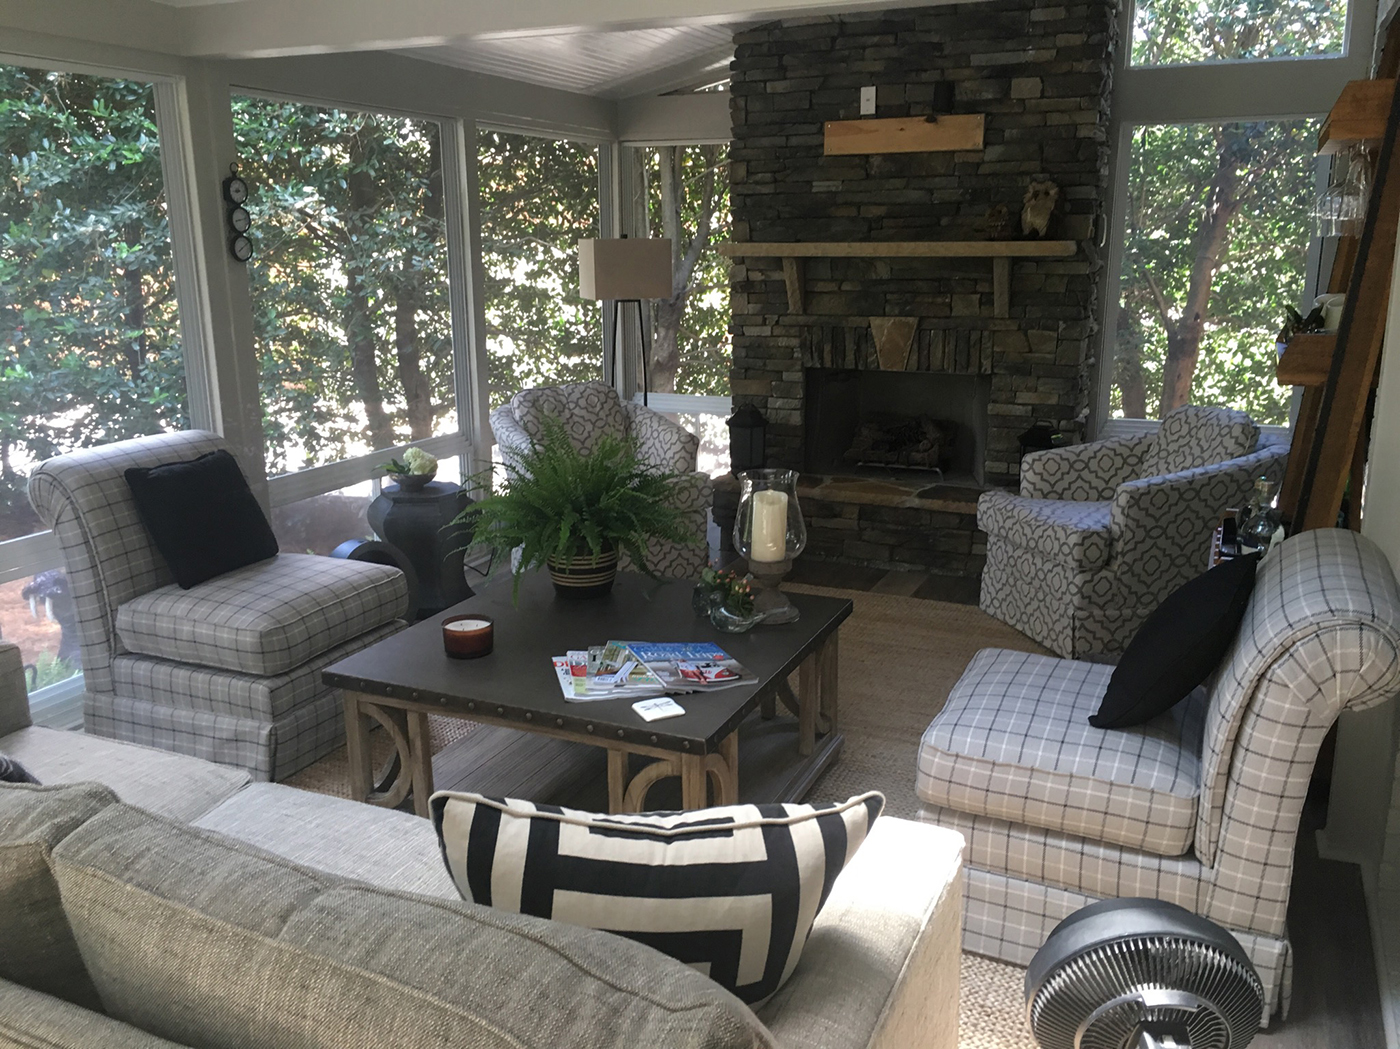 How Much Would It Cost To Integrate An Outdoor Fireplace